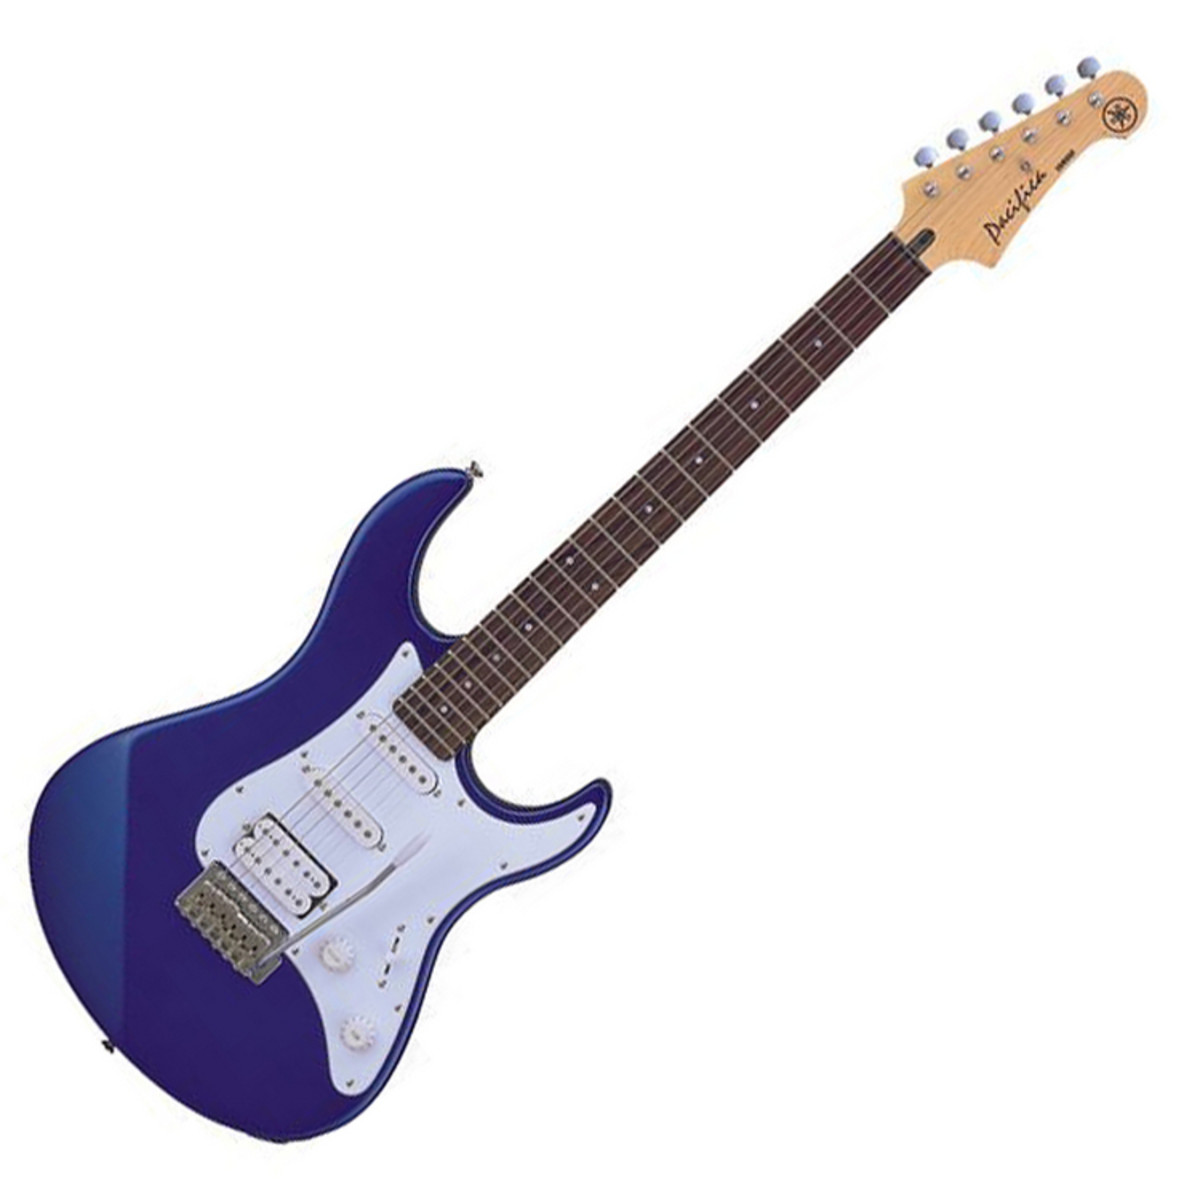 yamaha pacifica 012 electric guitar metallic blue trax music store. Black Bedroom Furniture Sets. Home Design Ideas